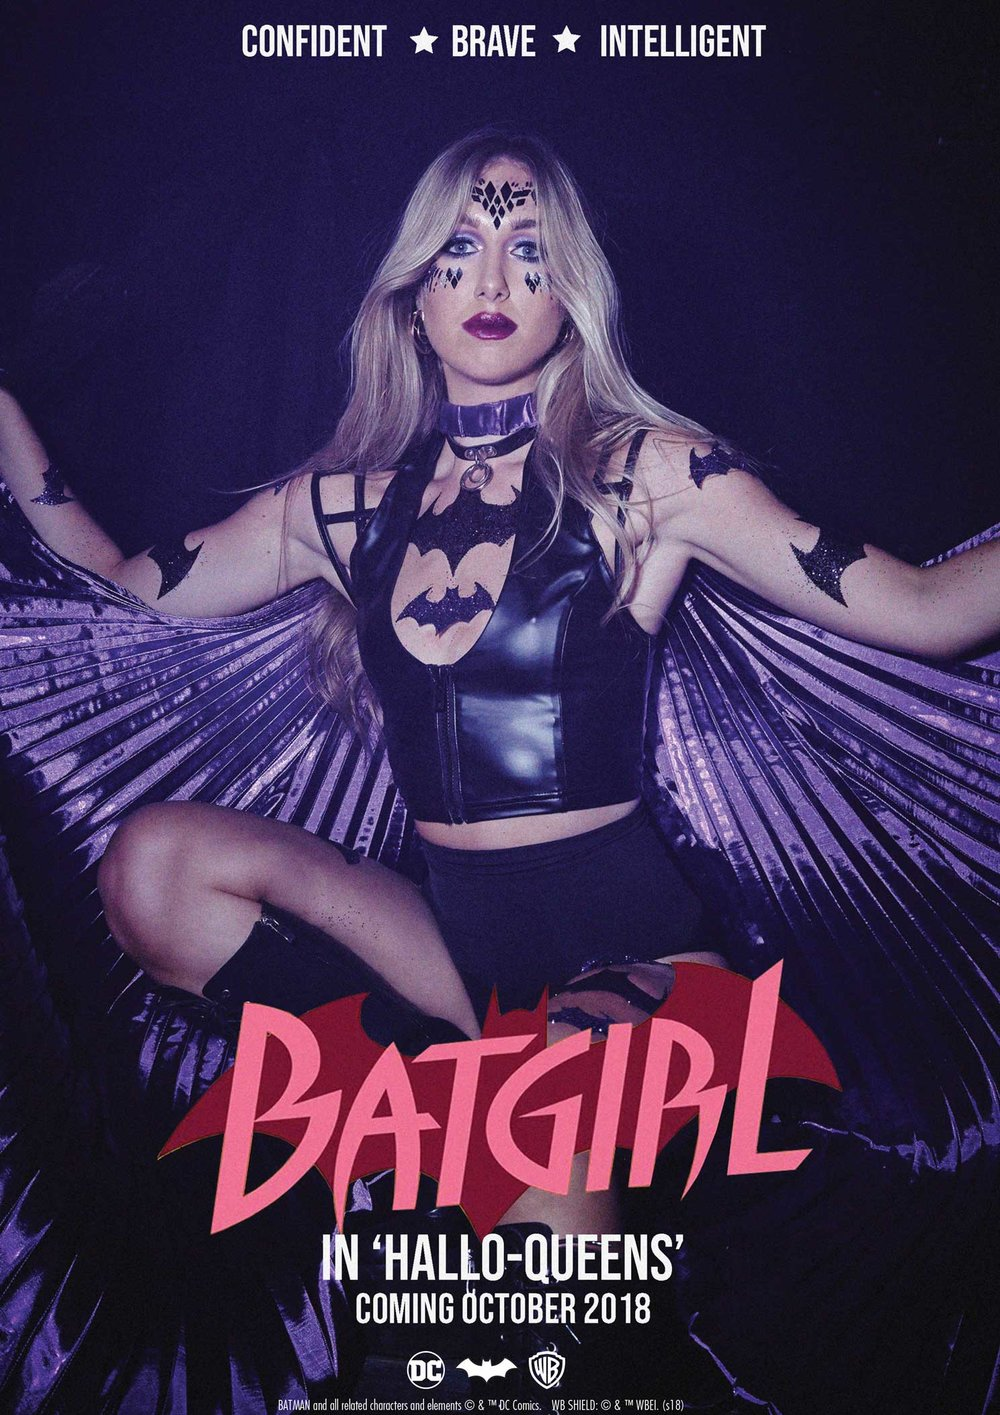 Bat Girl - Meet Bat Girl, the ultimate crime fighting bae and the Queen of Gotham City! She's confident, brave and intelligent!